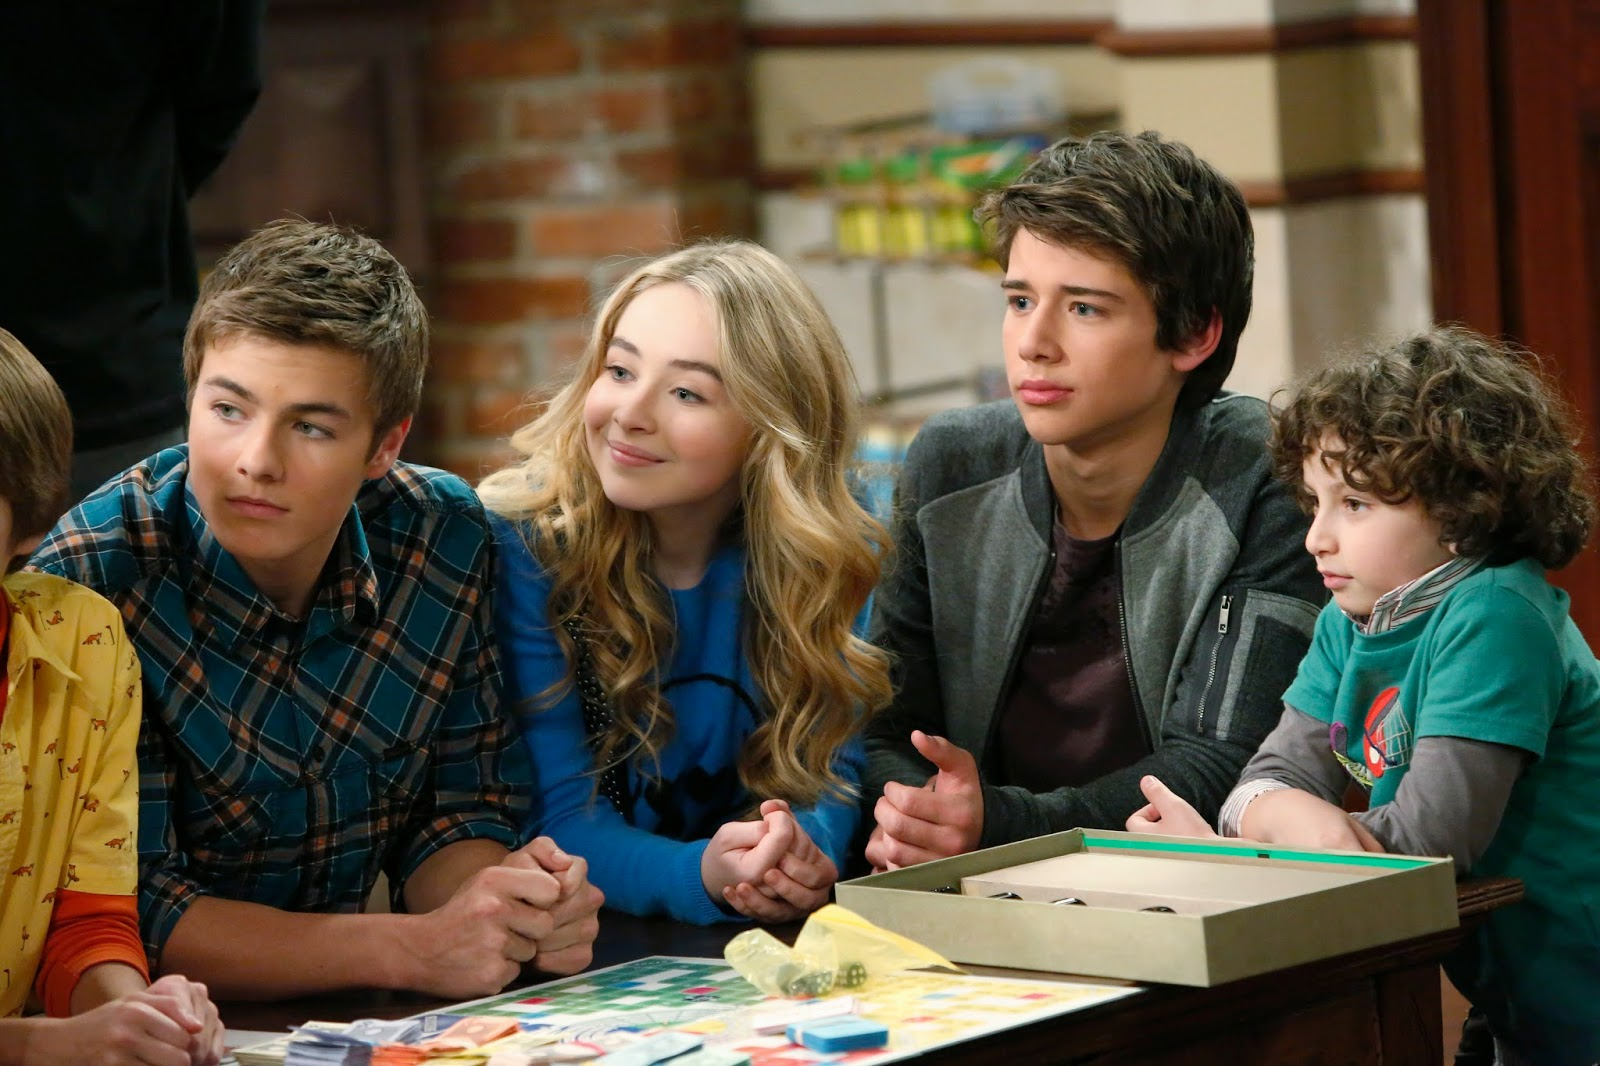 girl meets game night cast Disney's girl meets world cast recreates the popular intro from the later seasons of boy meets world late night television more game of thrones.